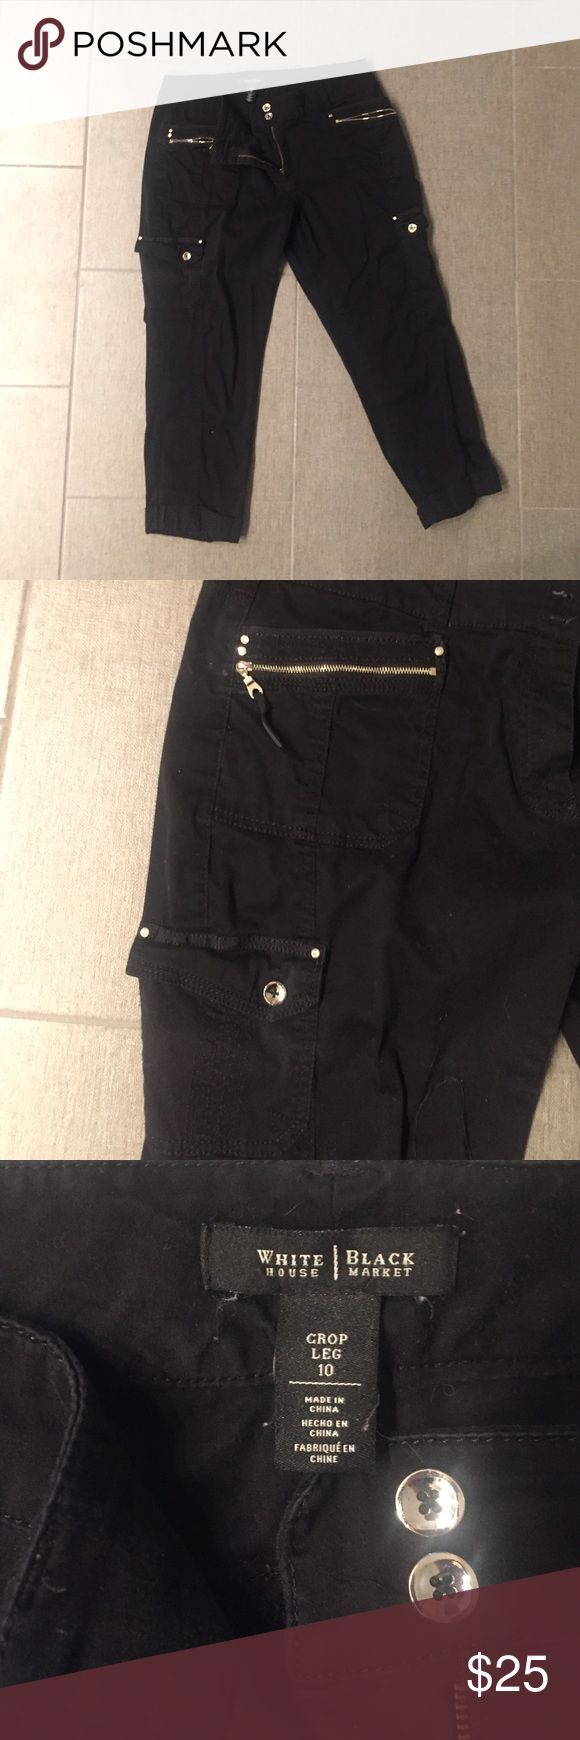 White House Black Market Cropped Pants Gently worn black cropped pants with silver buttons and zipper pockets from White House Black Market. Size 10 White House Black Market Pants Ankle & Cropped